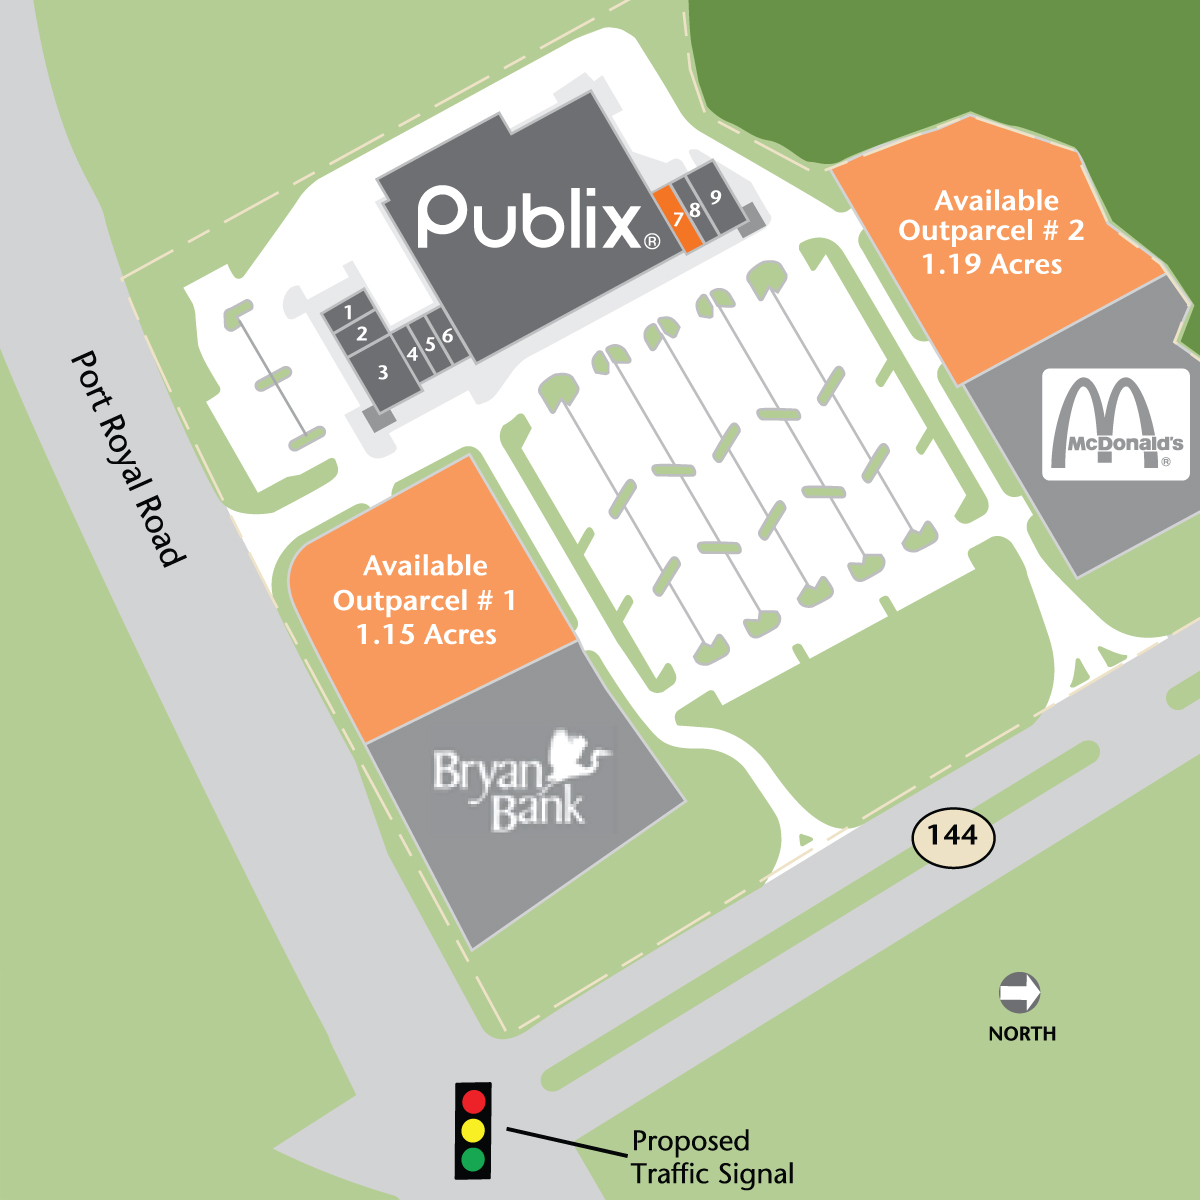 publix demographics Find 144 listings related to publix in dade city on ypcom see reviews, photos, directions, phone numbers and more for publix locations in dade city, fl.